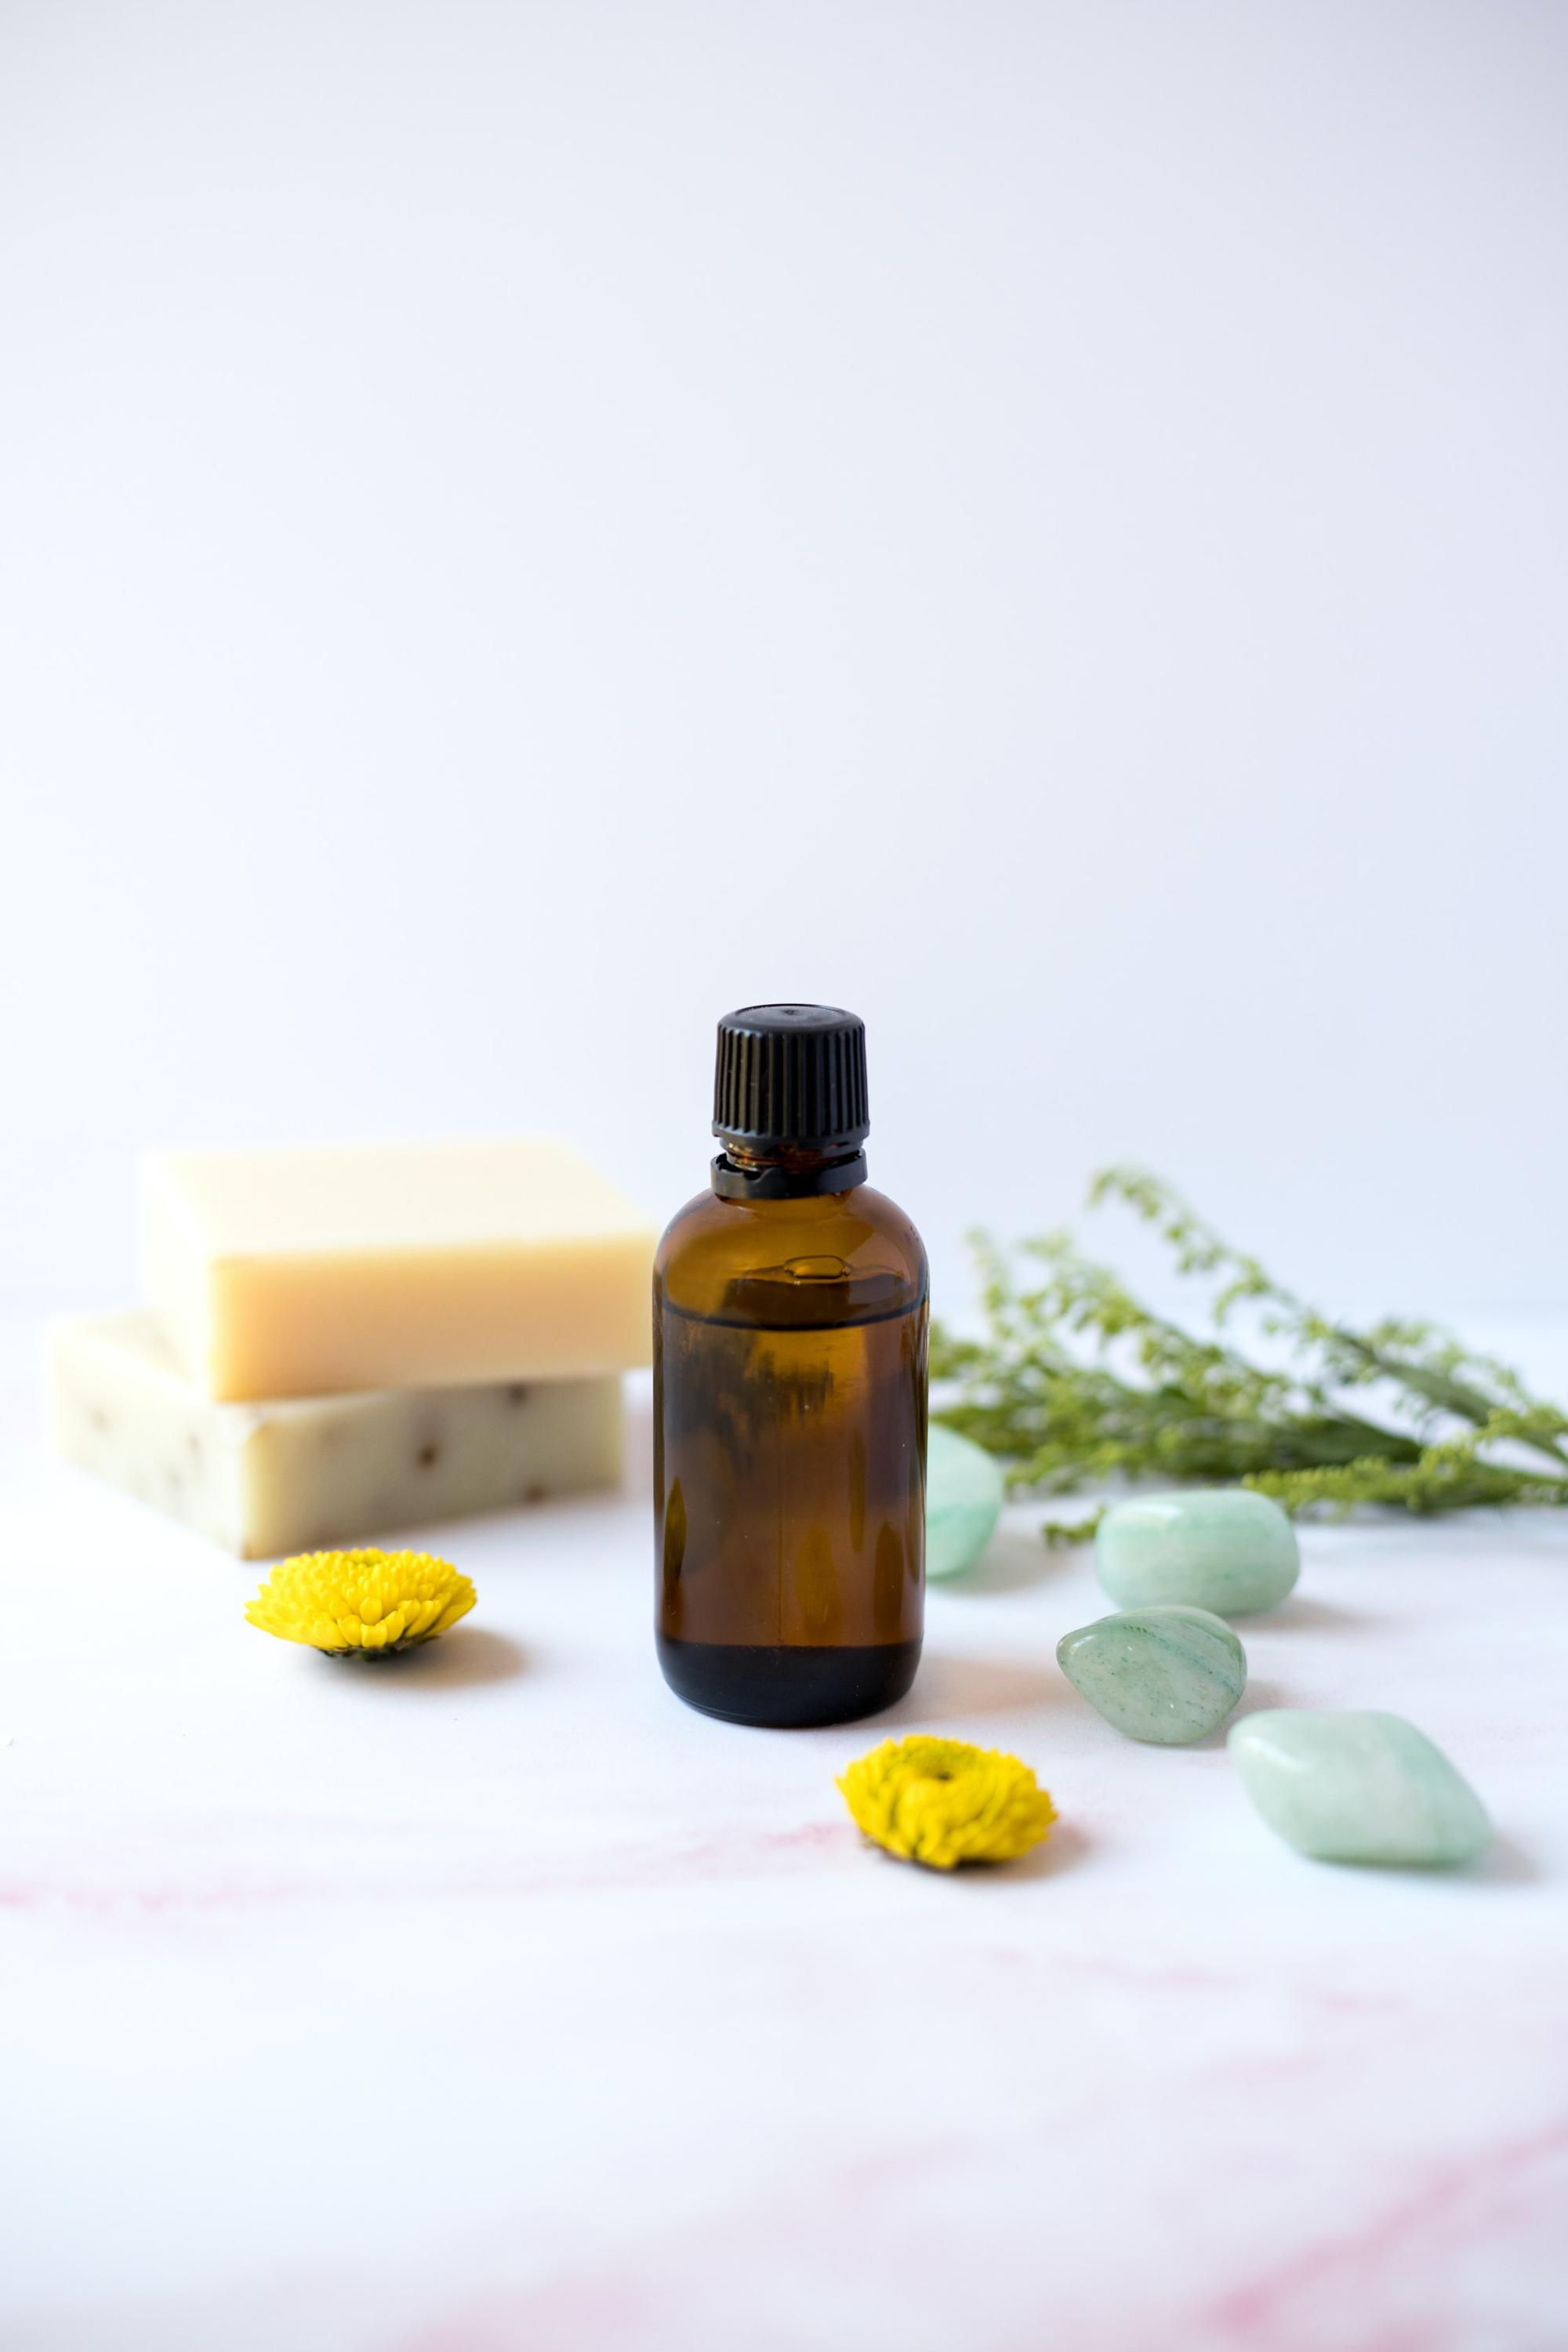 Using tinctures for balance and wellness